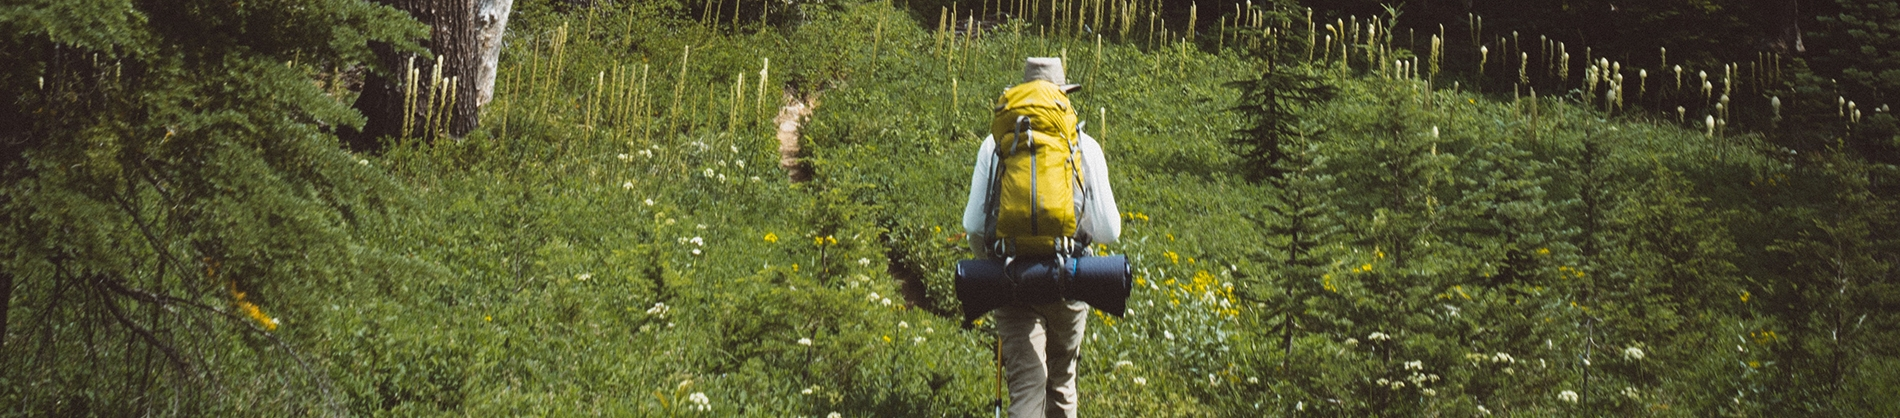 A person walking through grass with a backpack on